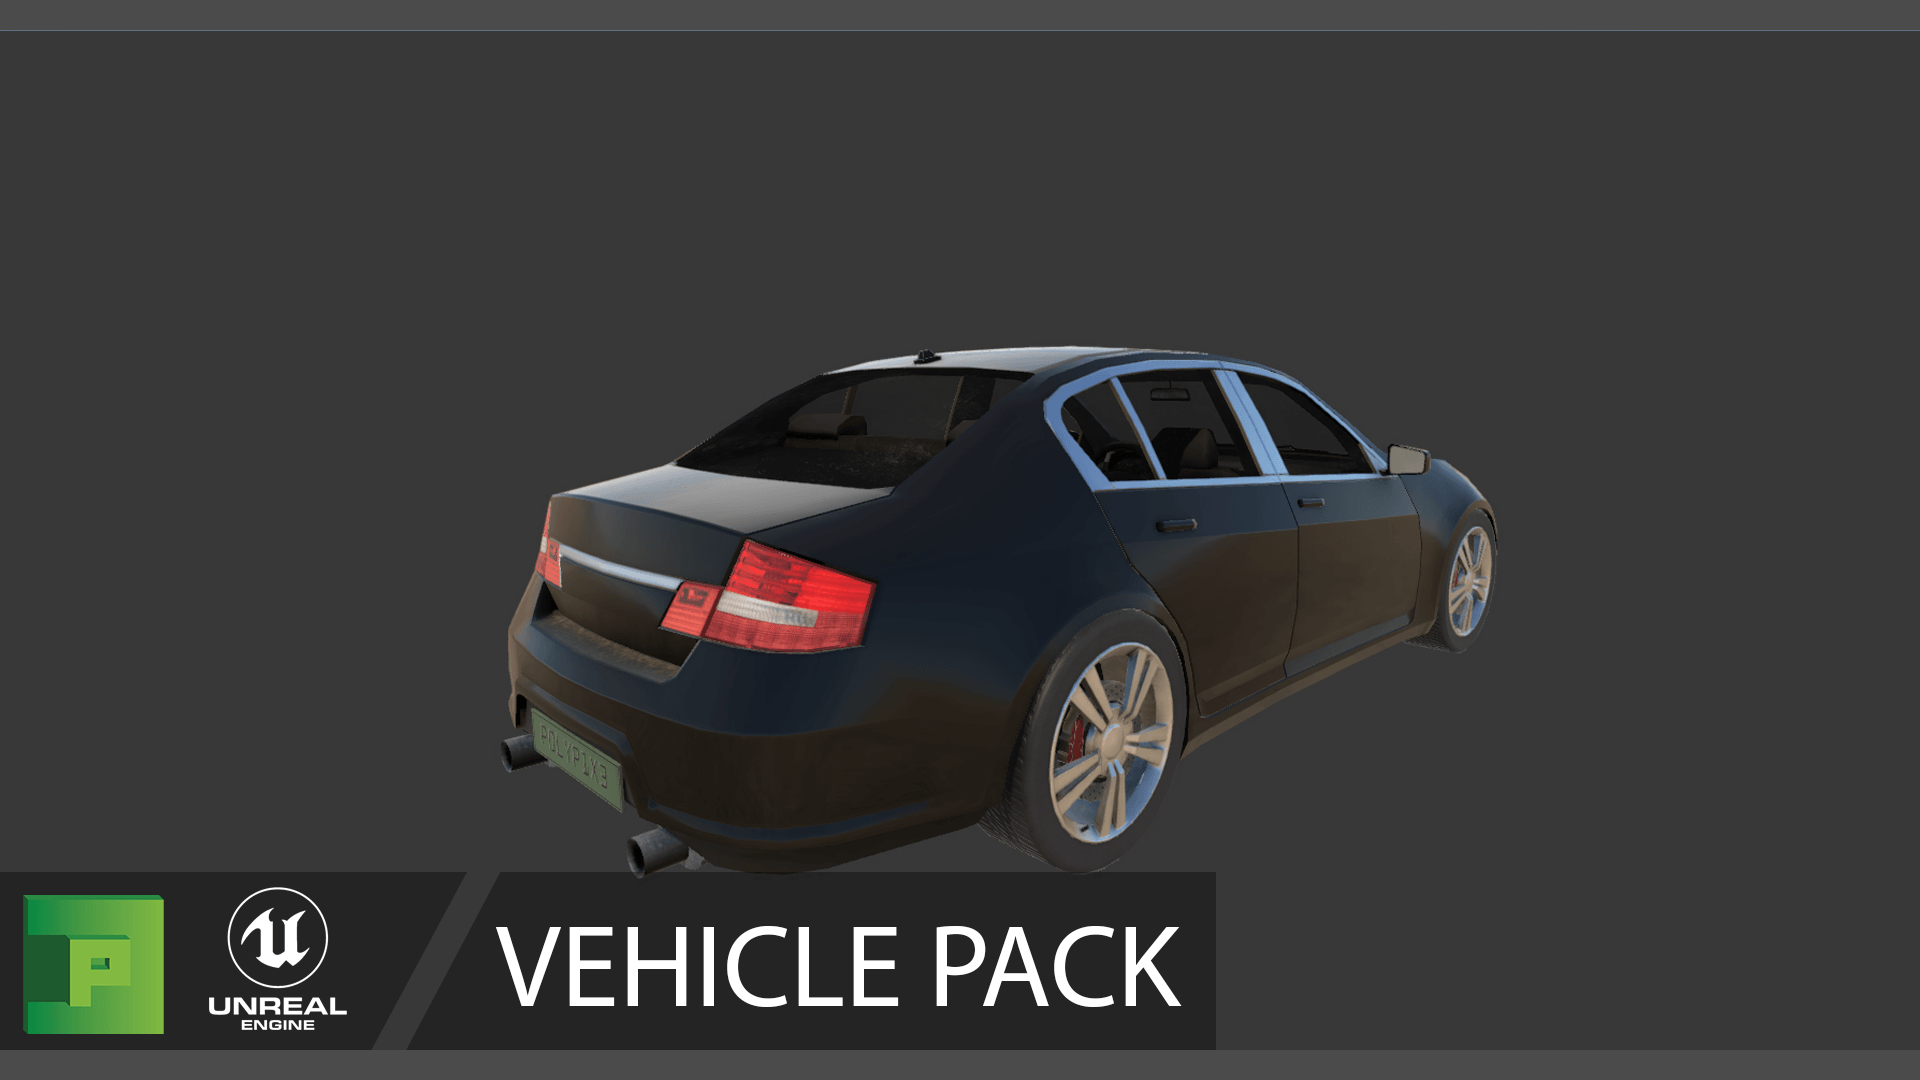 VehiclePack_05